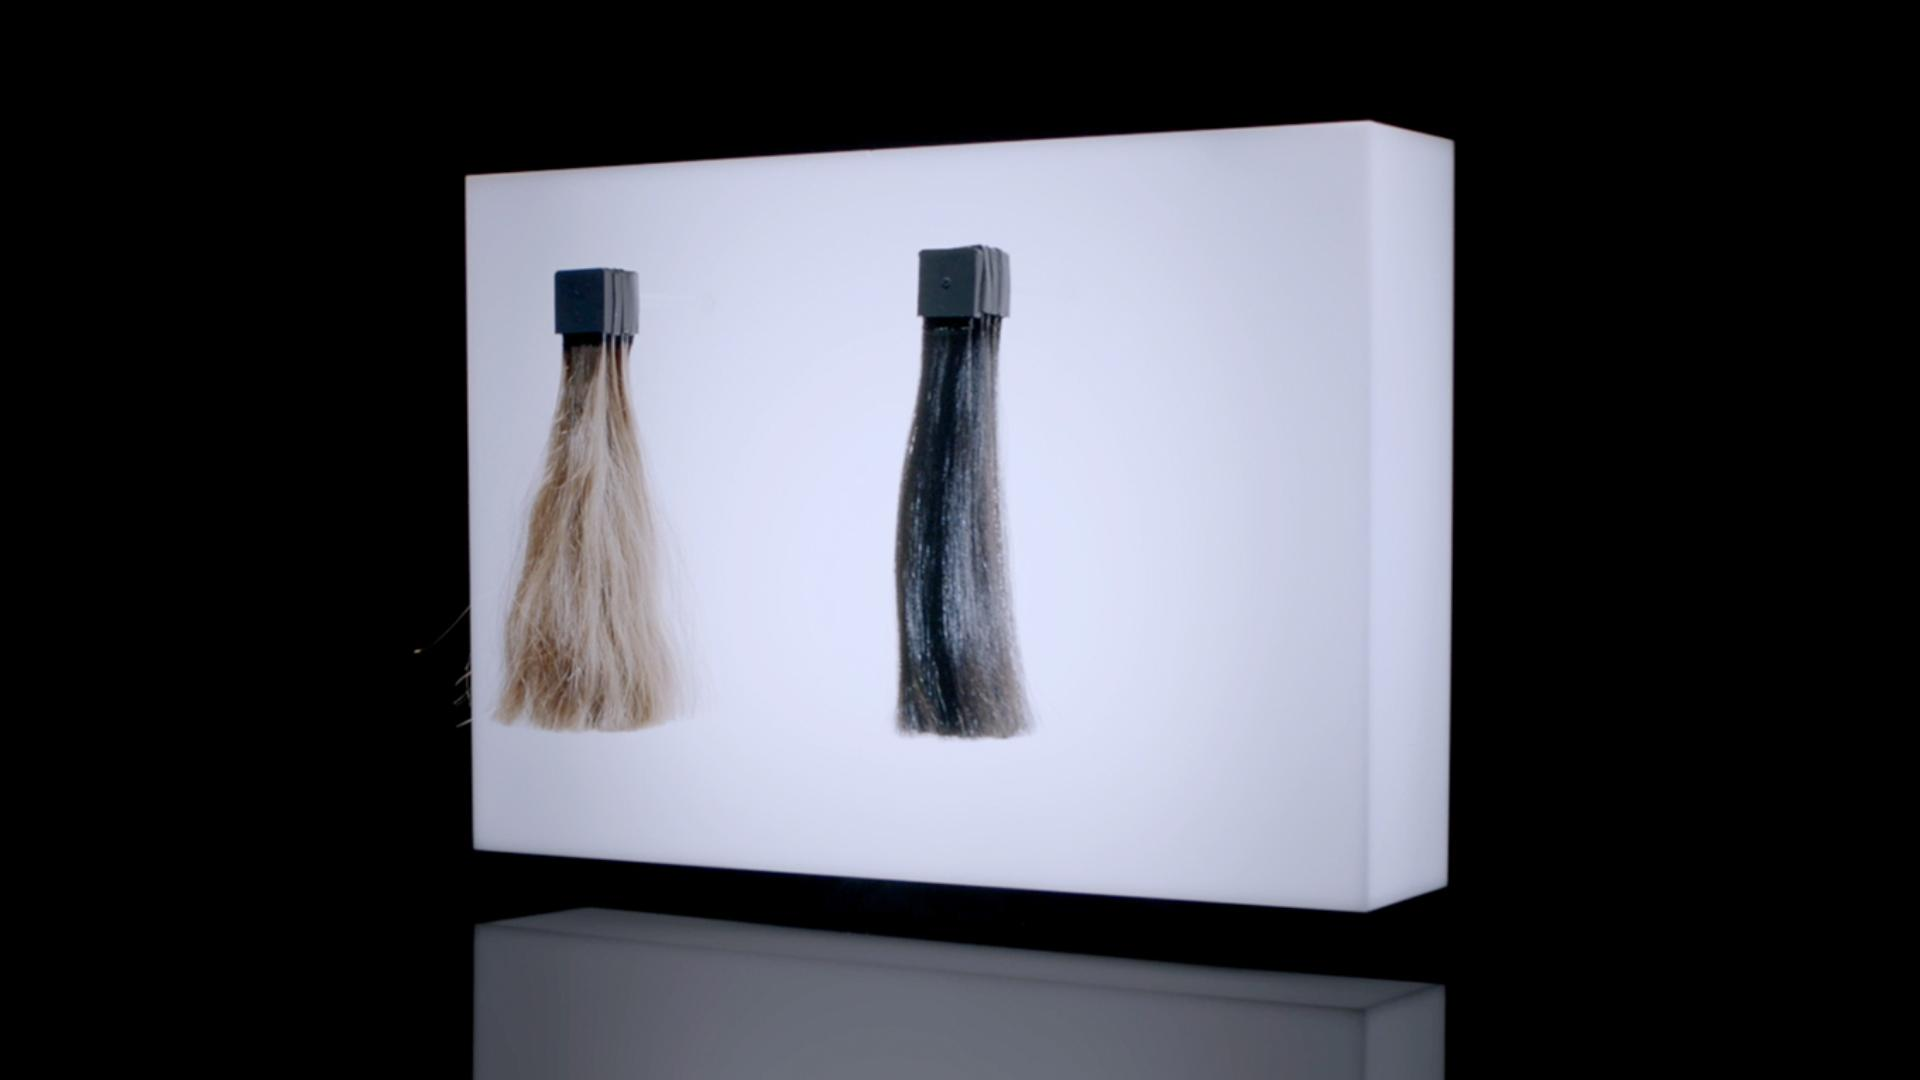 Play the video: At Dyson we redesigned heat control to prevent exteme heat damage and protect your hair, instead of having to repair it.